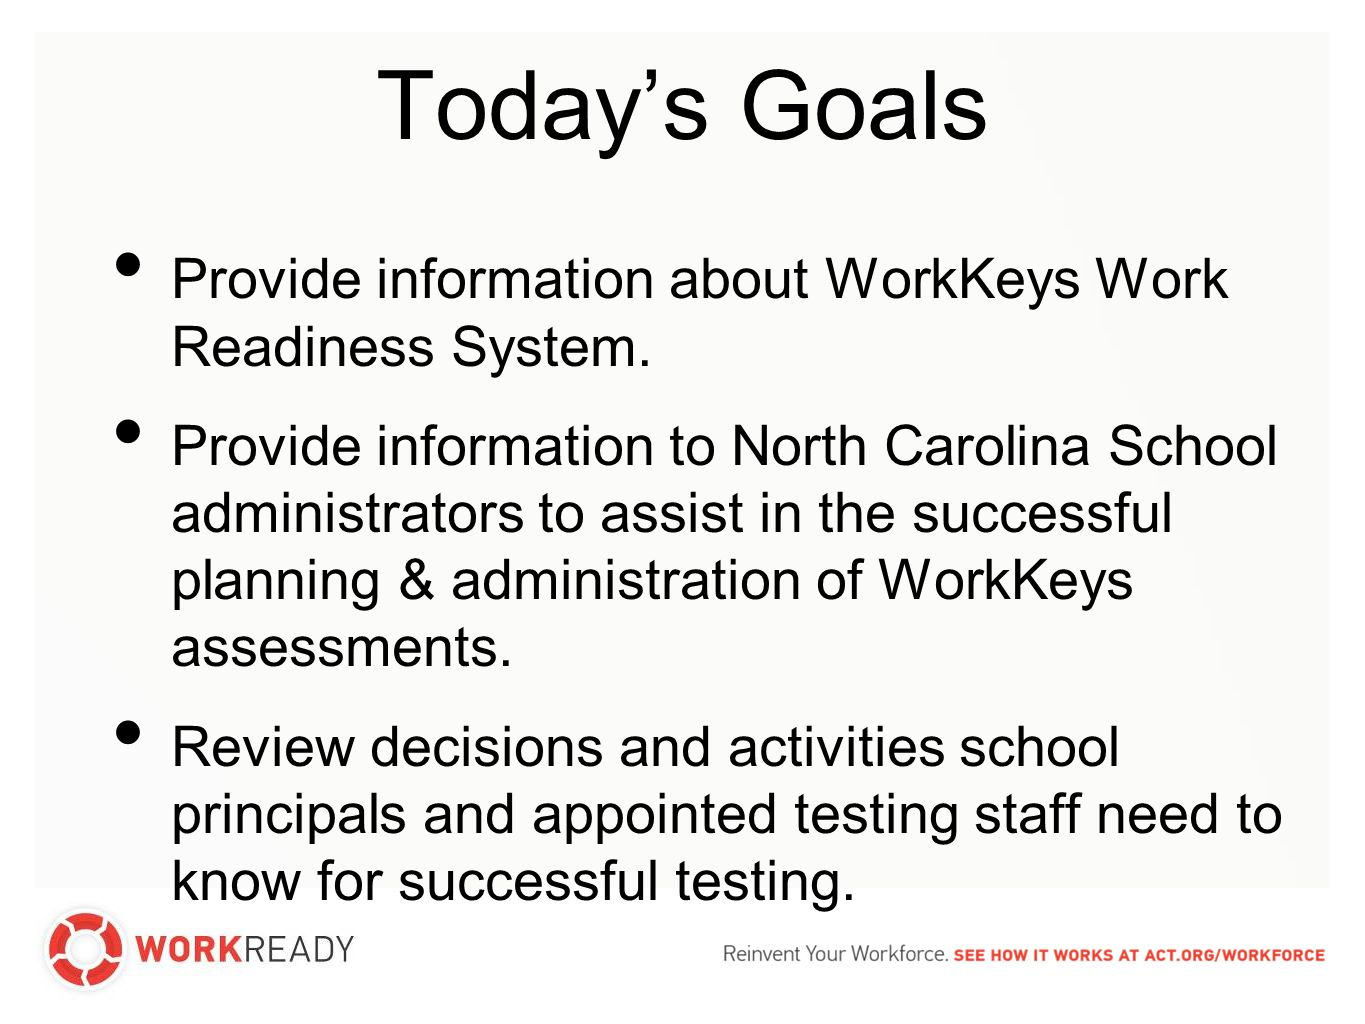 Work Readiness System evidence-based Comprehensive, evidence-based solutions.